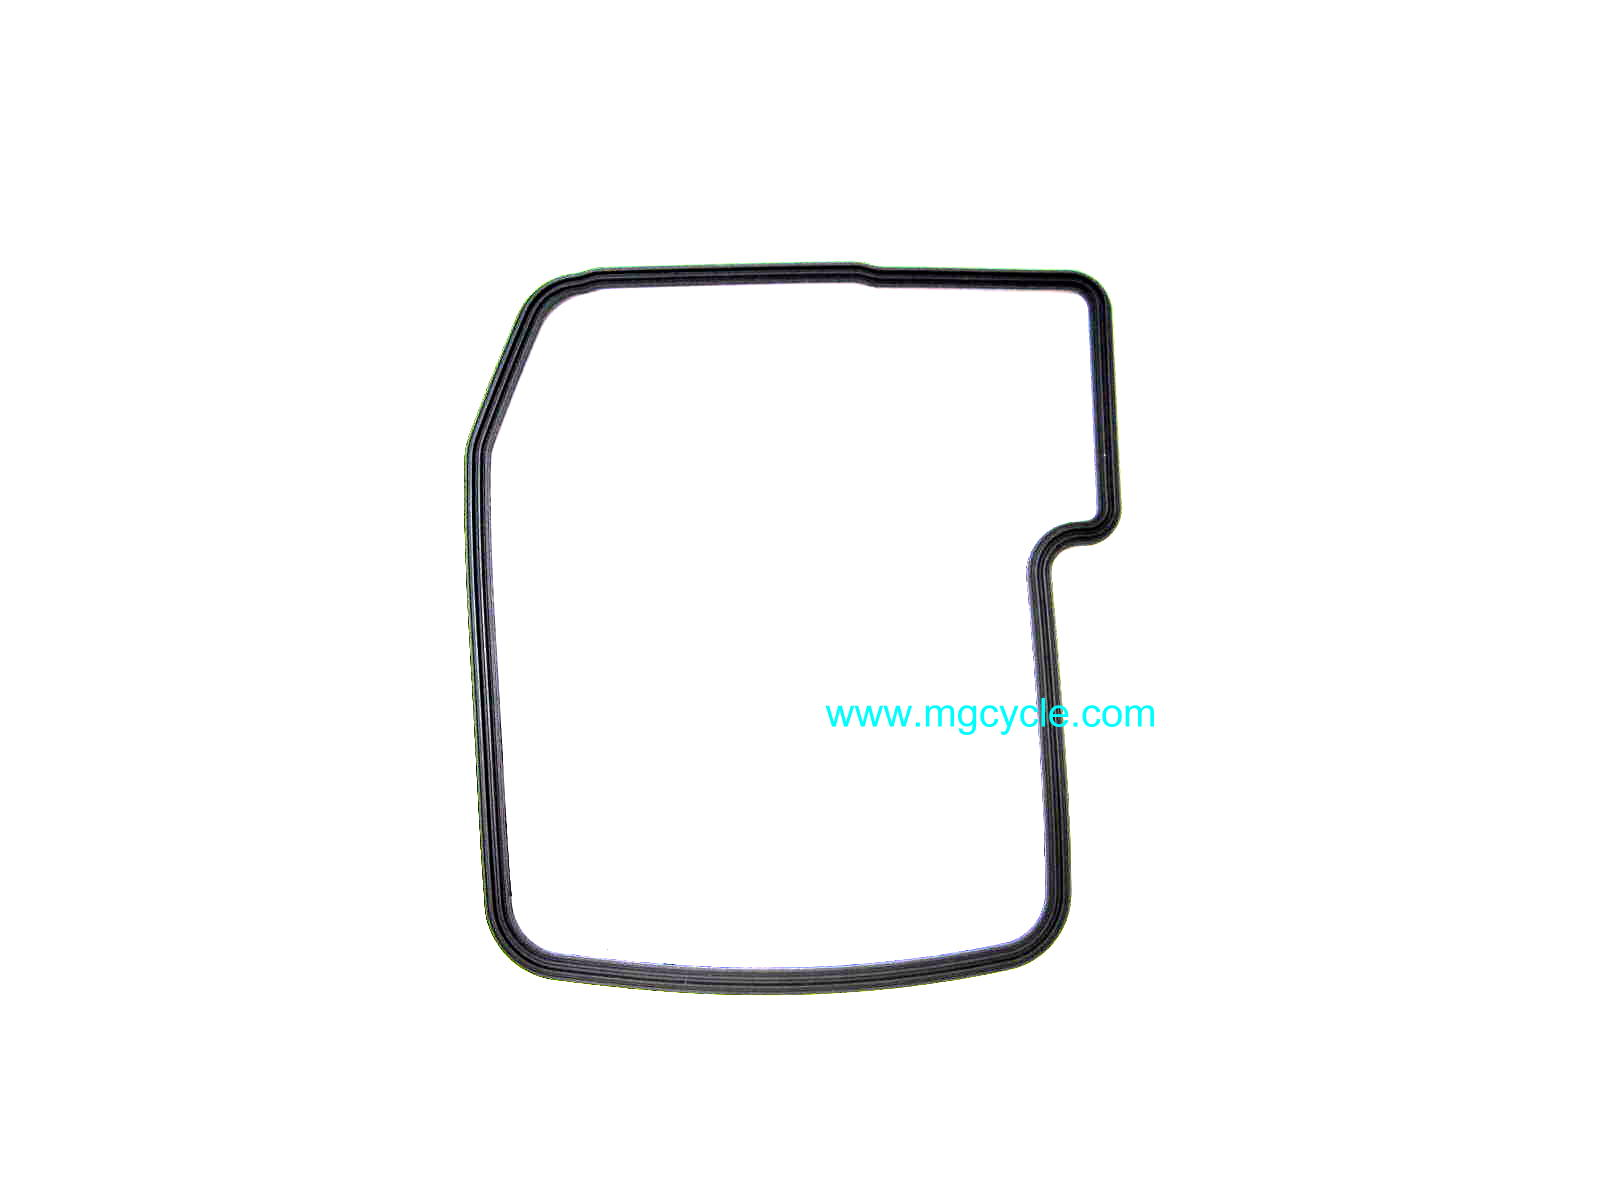 right side valve cover gasket, 1200cc 8 valve engines